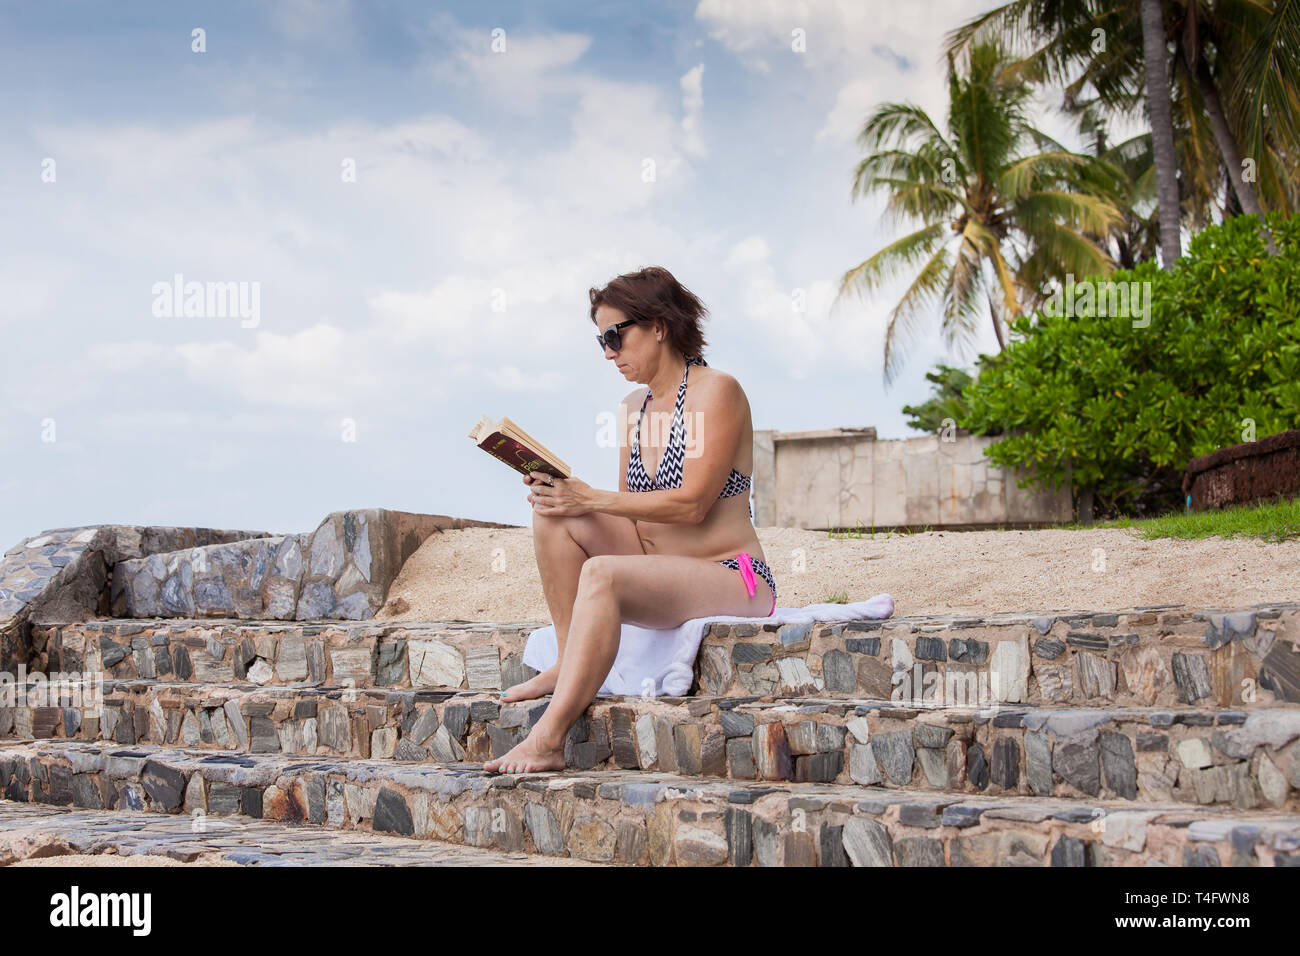 A middle-aged woman reading a book on a stone promenade. - Stock Image